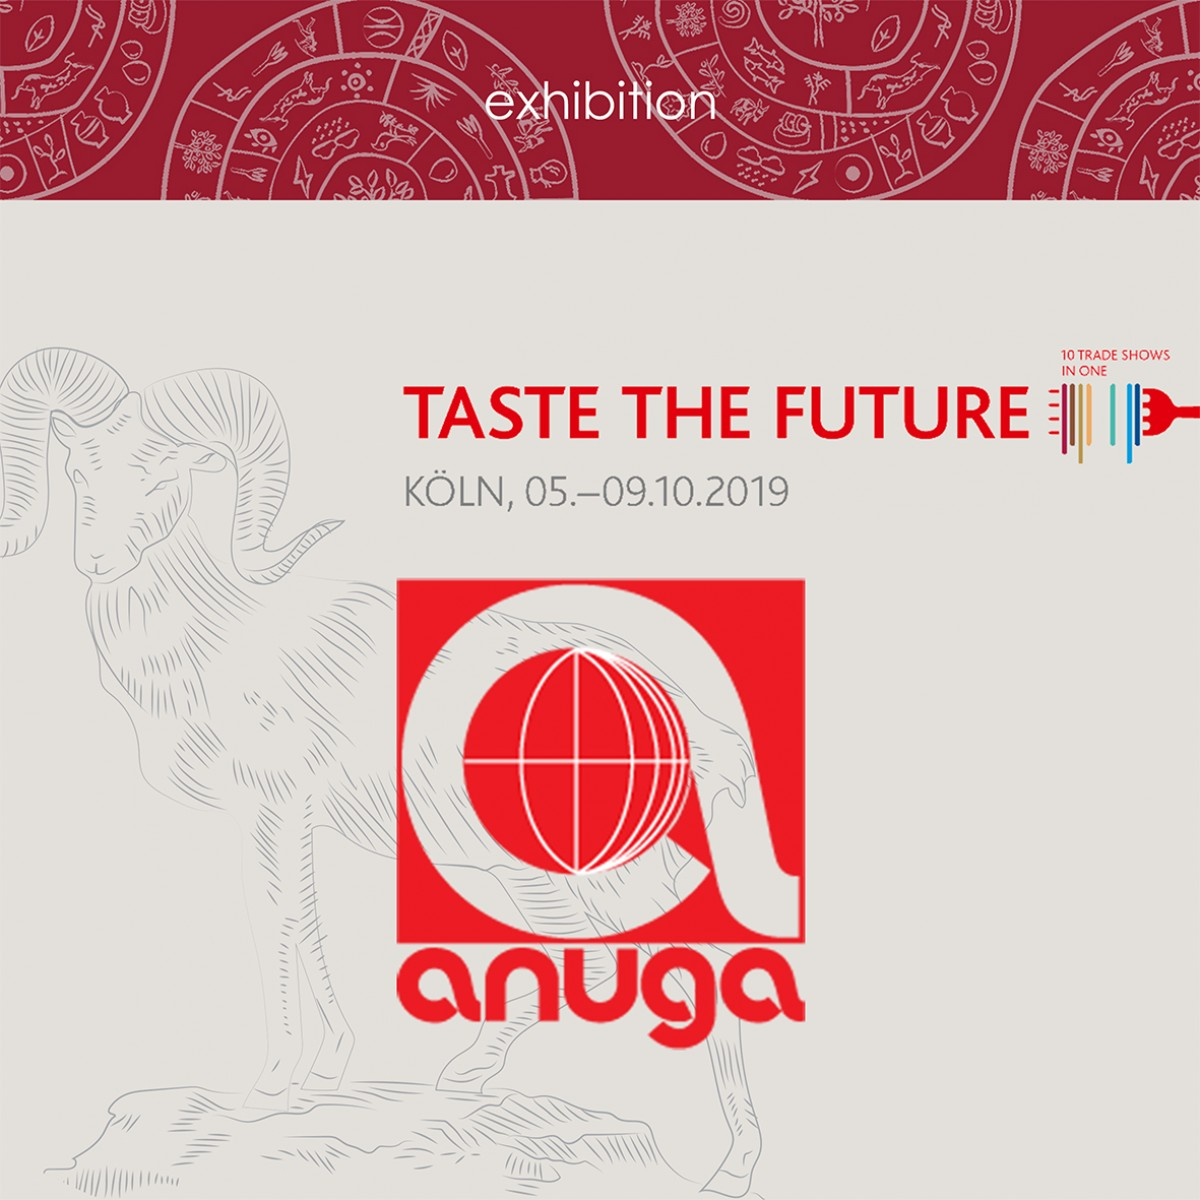 Our participation in the ANUGA 2019 International Exhibition